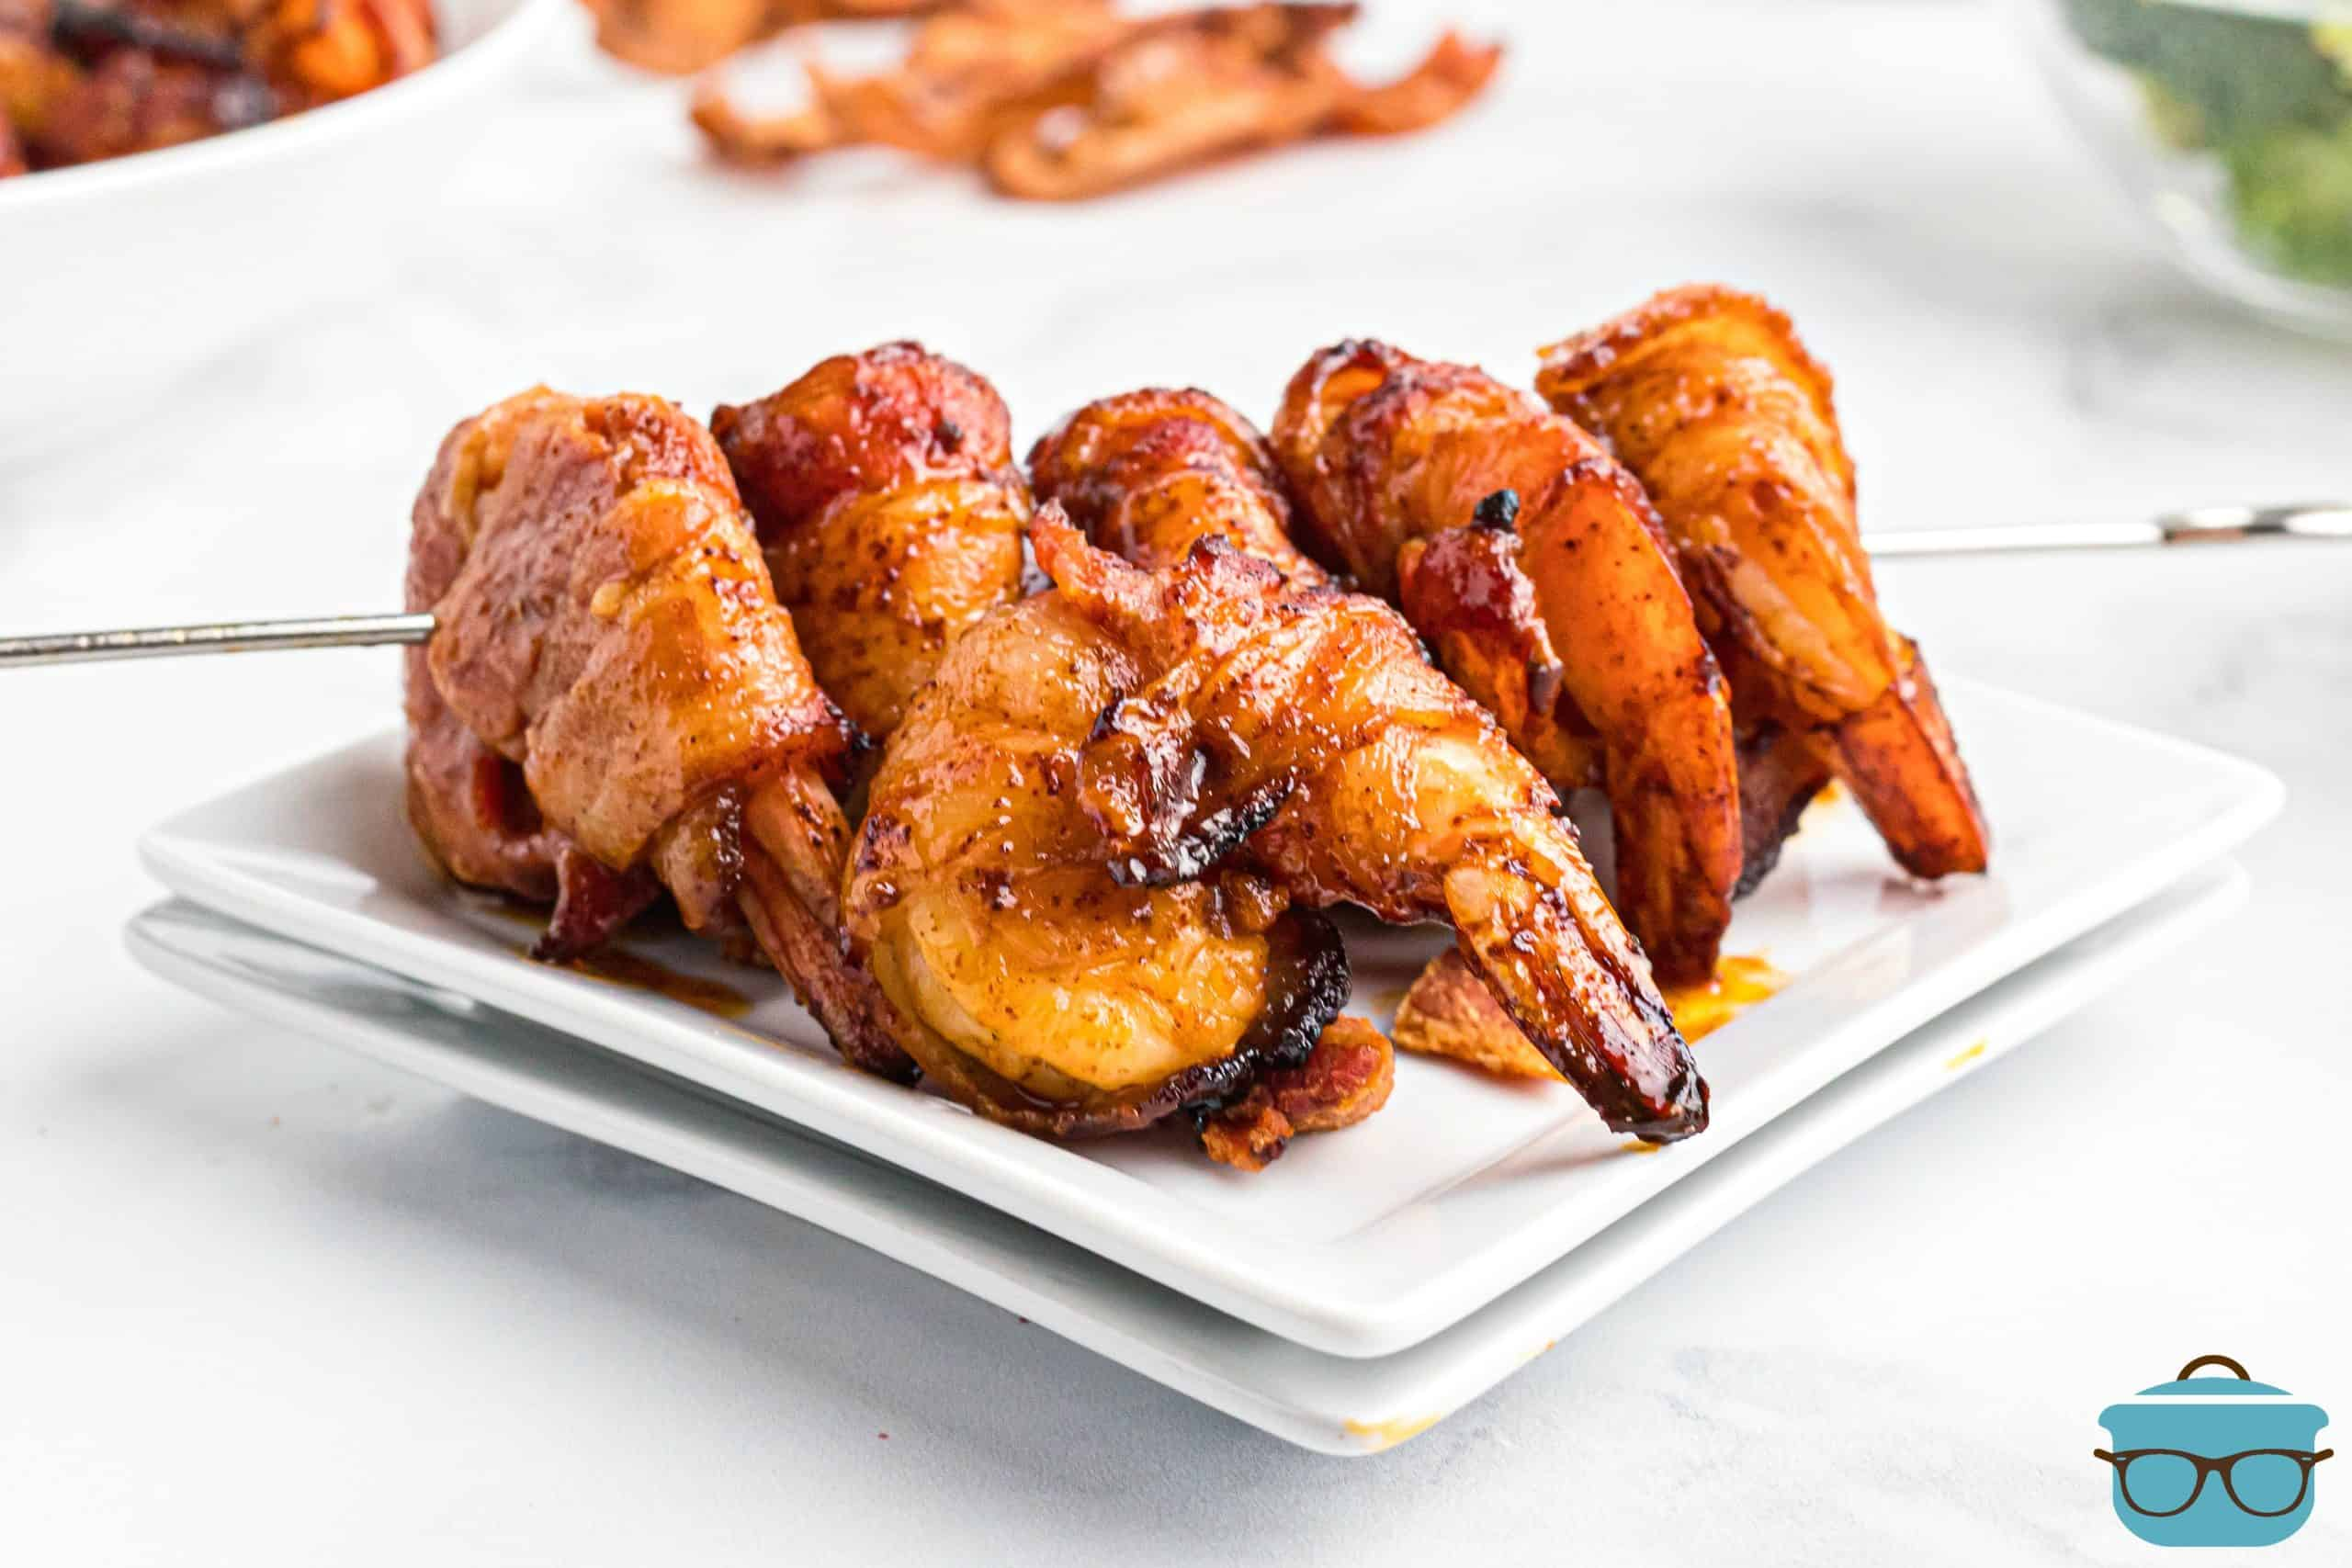 BBQ Bacon Wrapped Shrimp on a metal skewer on white plates.